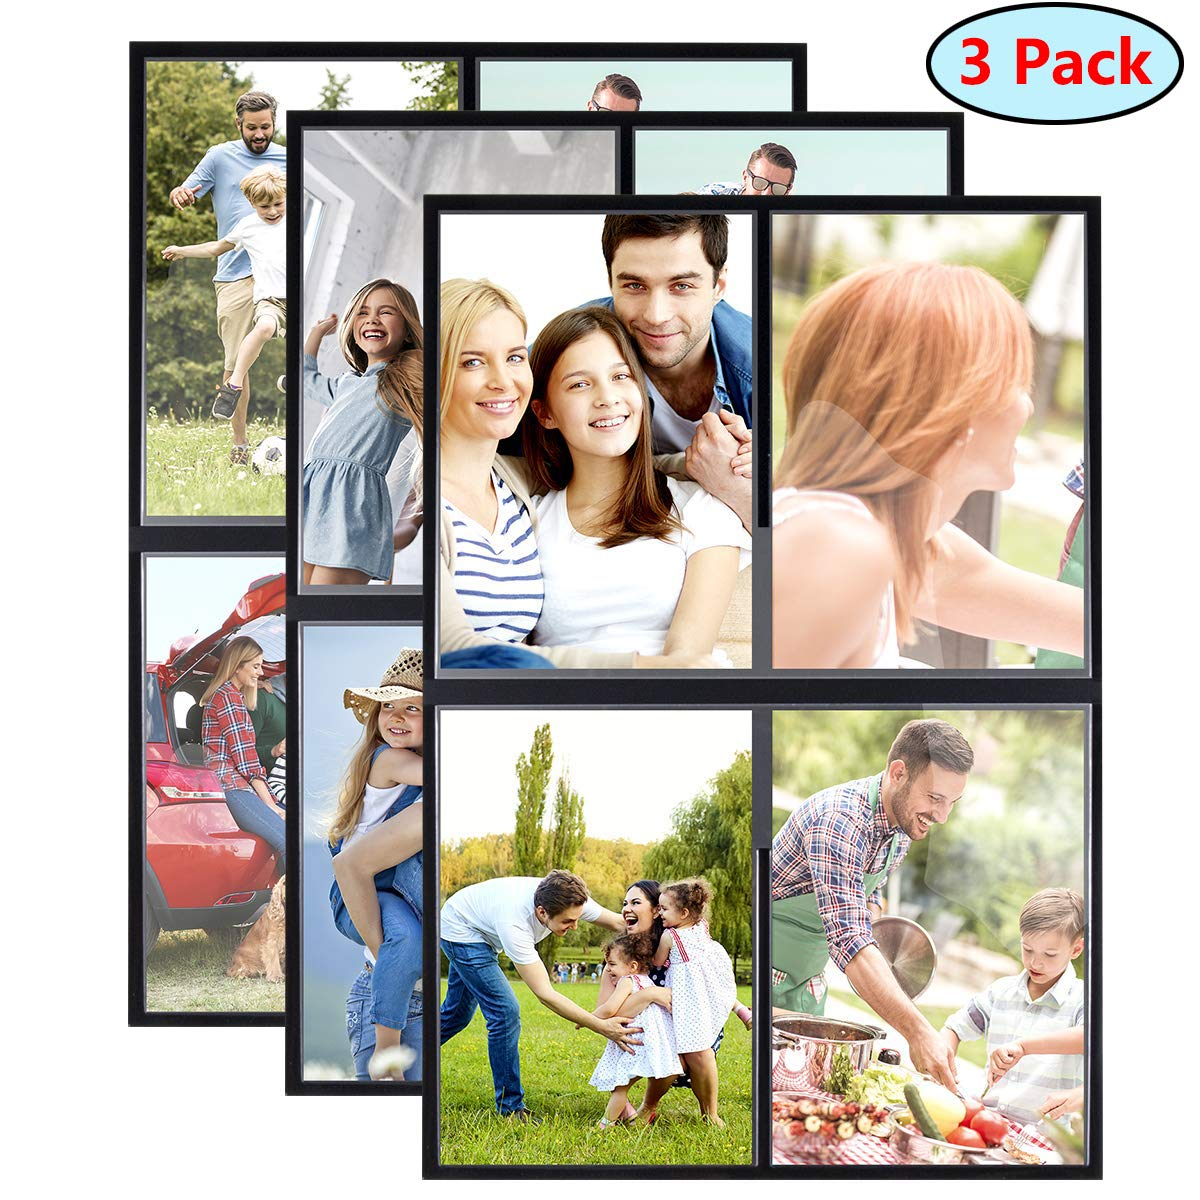 HIIMIEI 4x6 Inch Refrigerator Magnetic Picture Frames, Fridge Magnet Photo Pocket Frames, 3 Pack Total Hold 12 Pictures by HIIMIEI